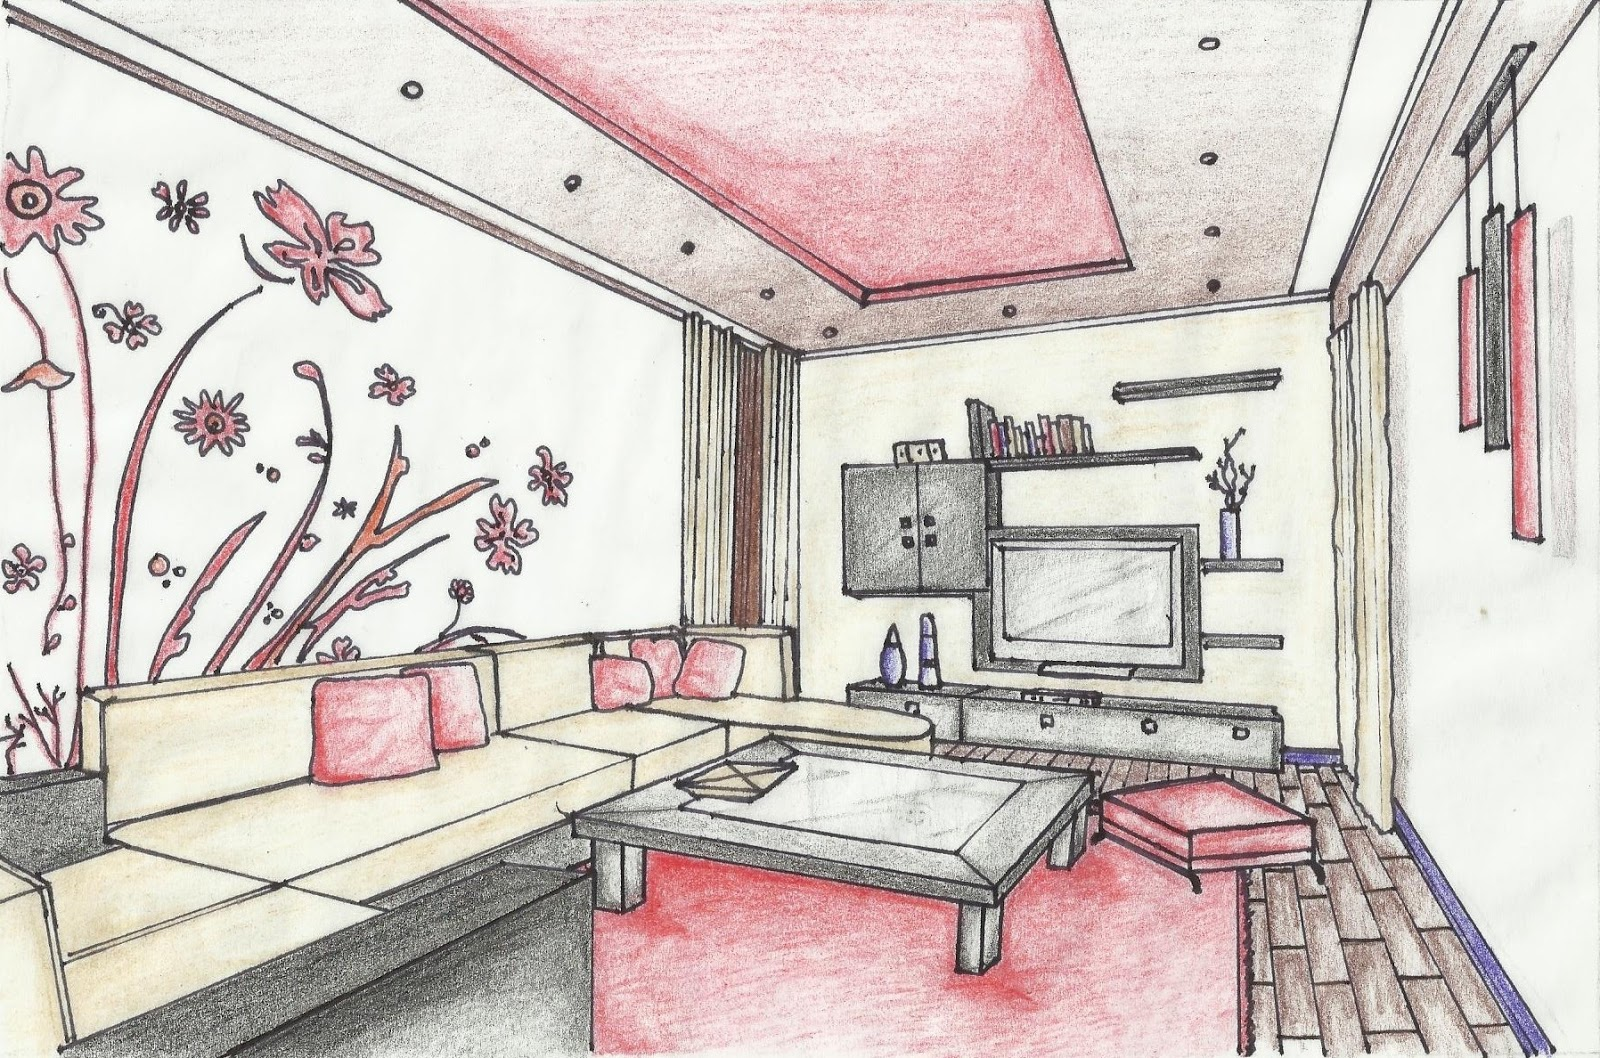 Manchester school of architecture portfolio sketches for Interior designs sketches